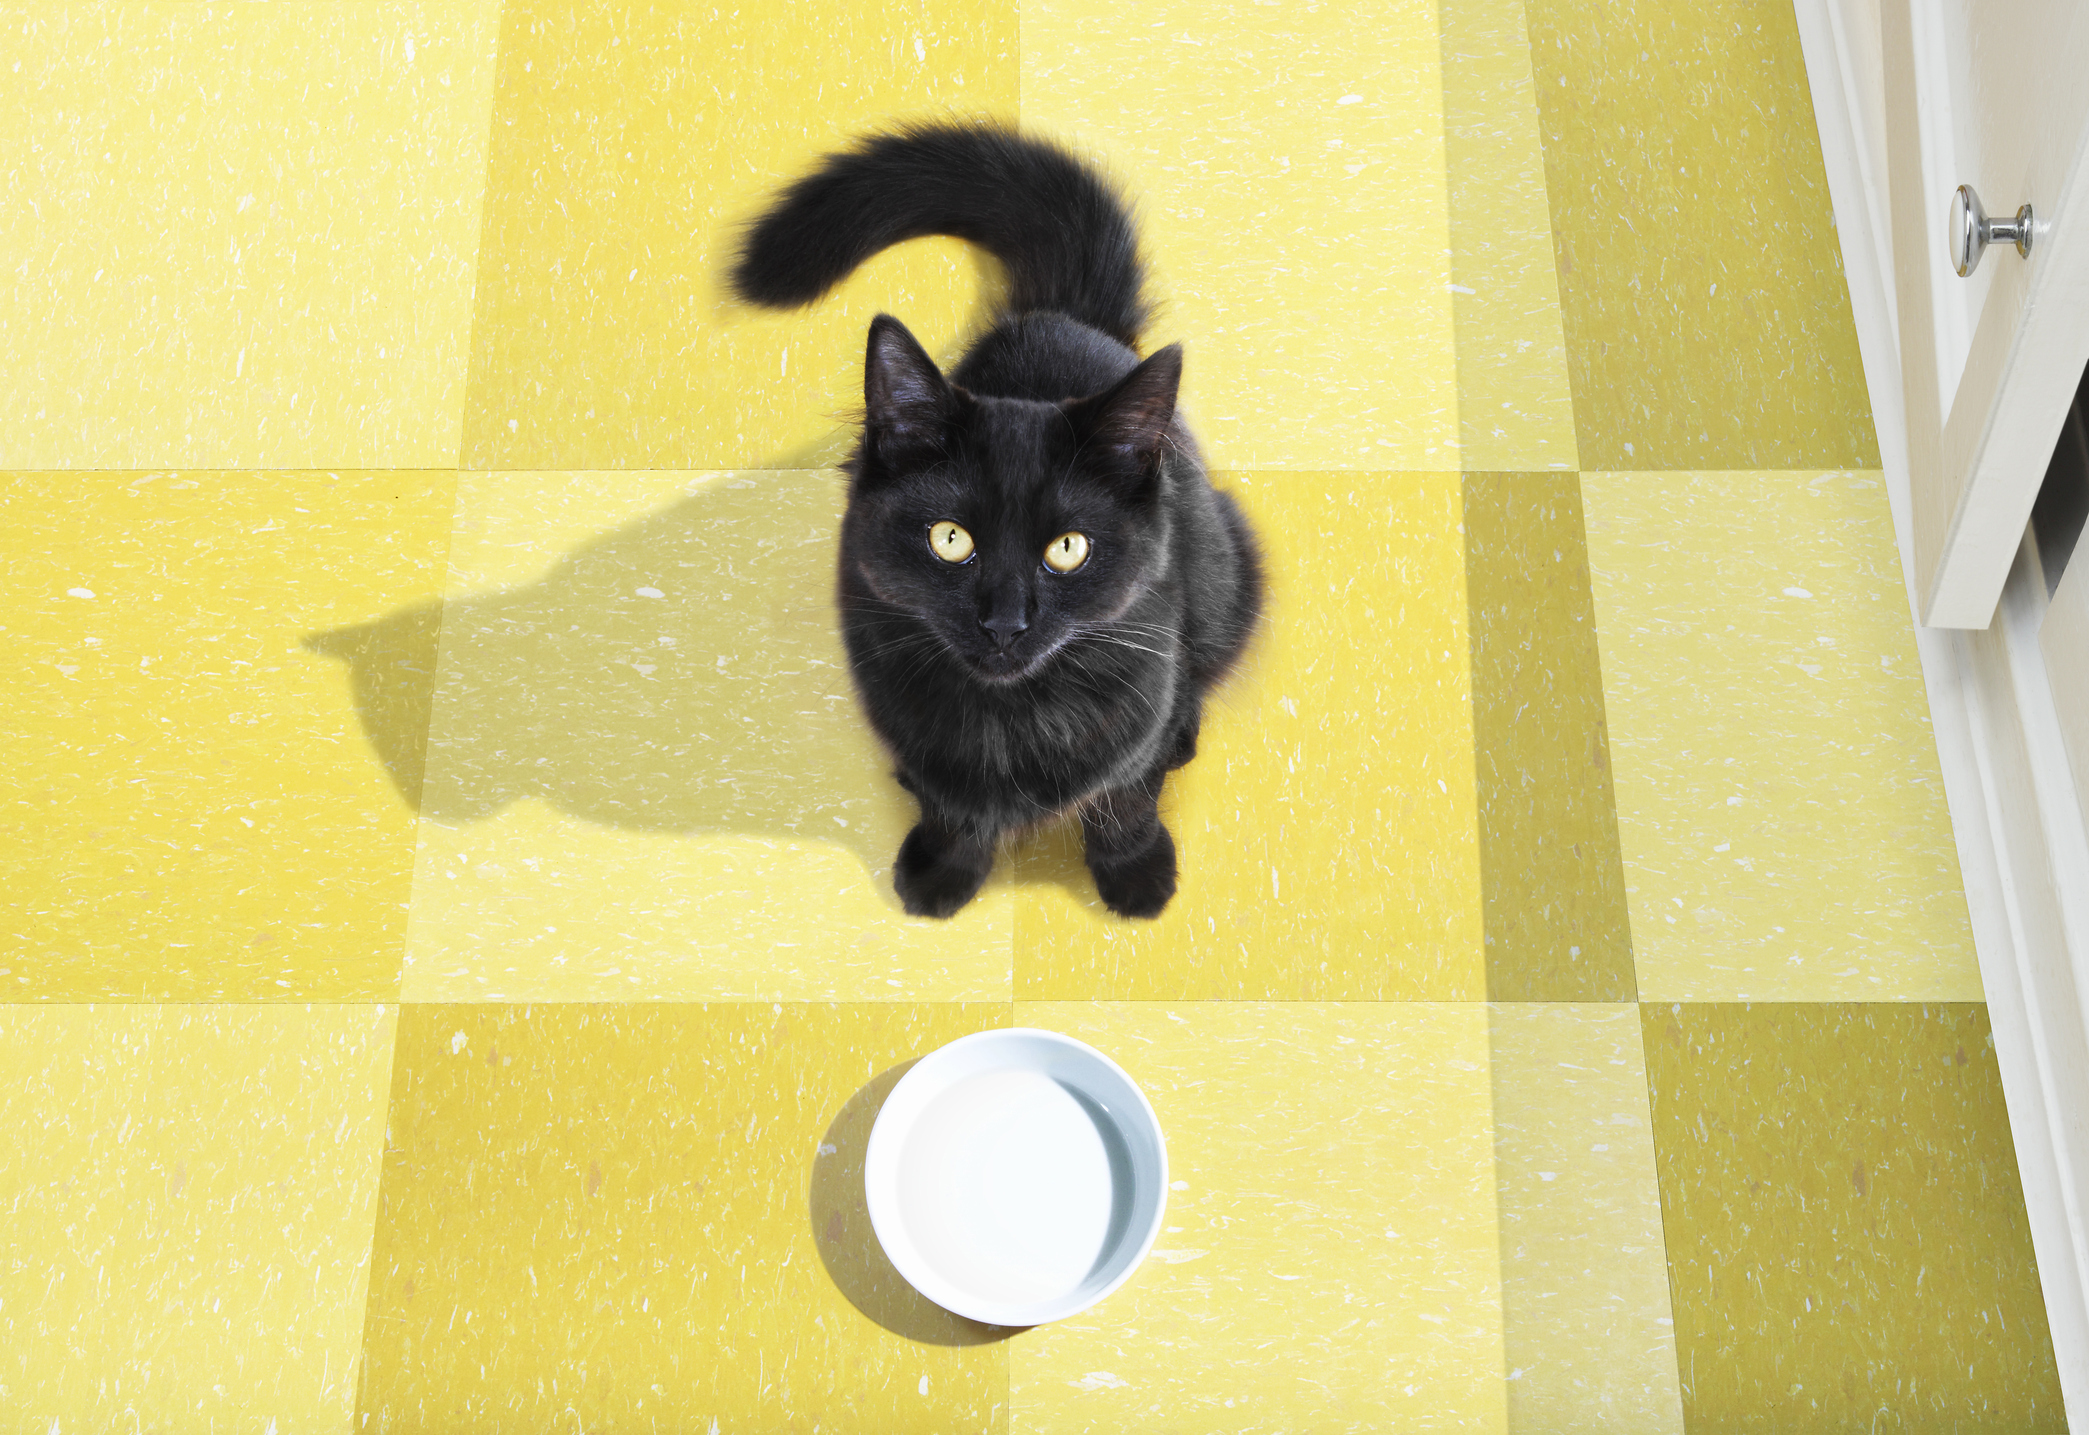 13 adorable black cat GIFs, in honor of Friday the 13th